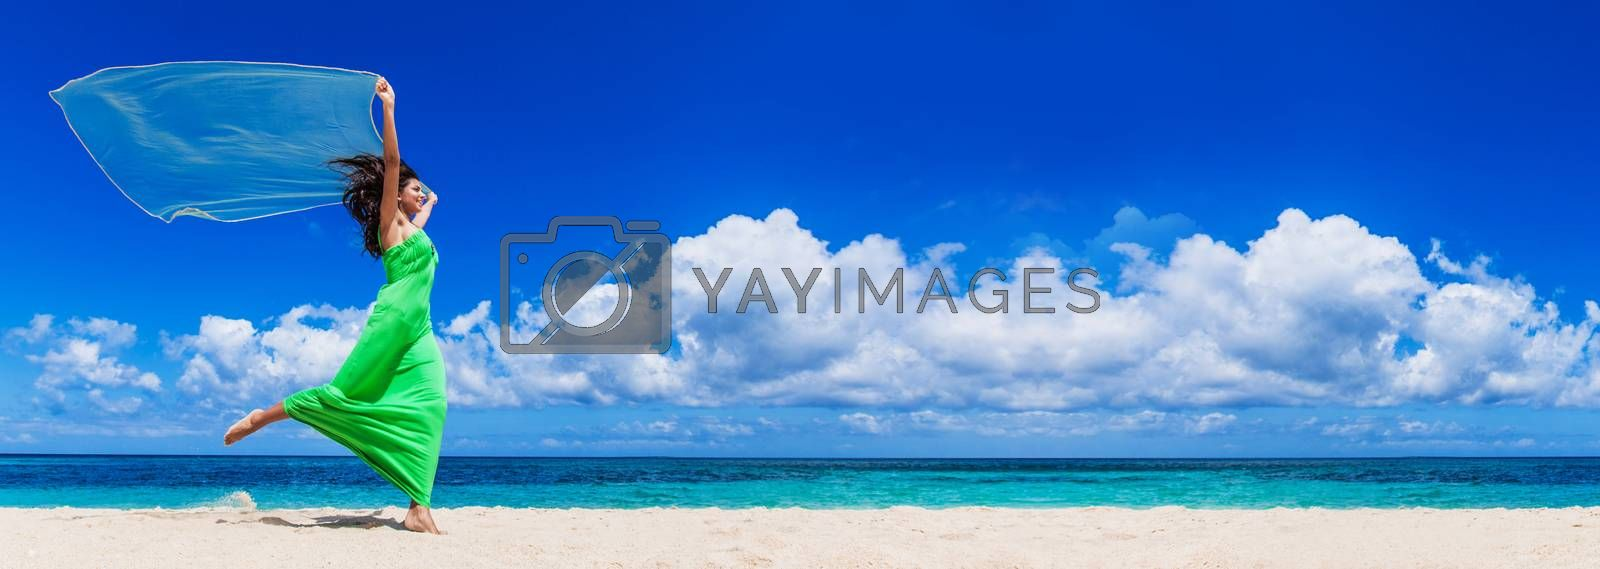 Female model in long green dress run on beach waving white fabric, vacation, freedom concept